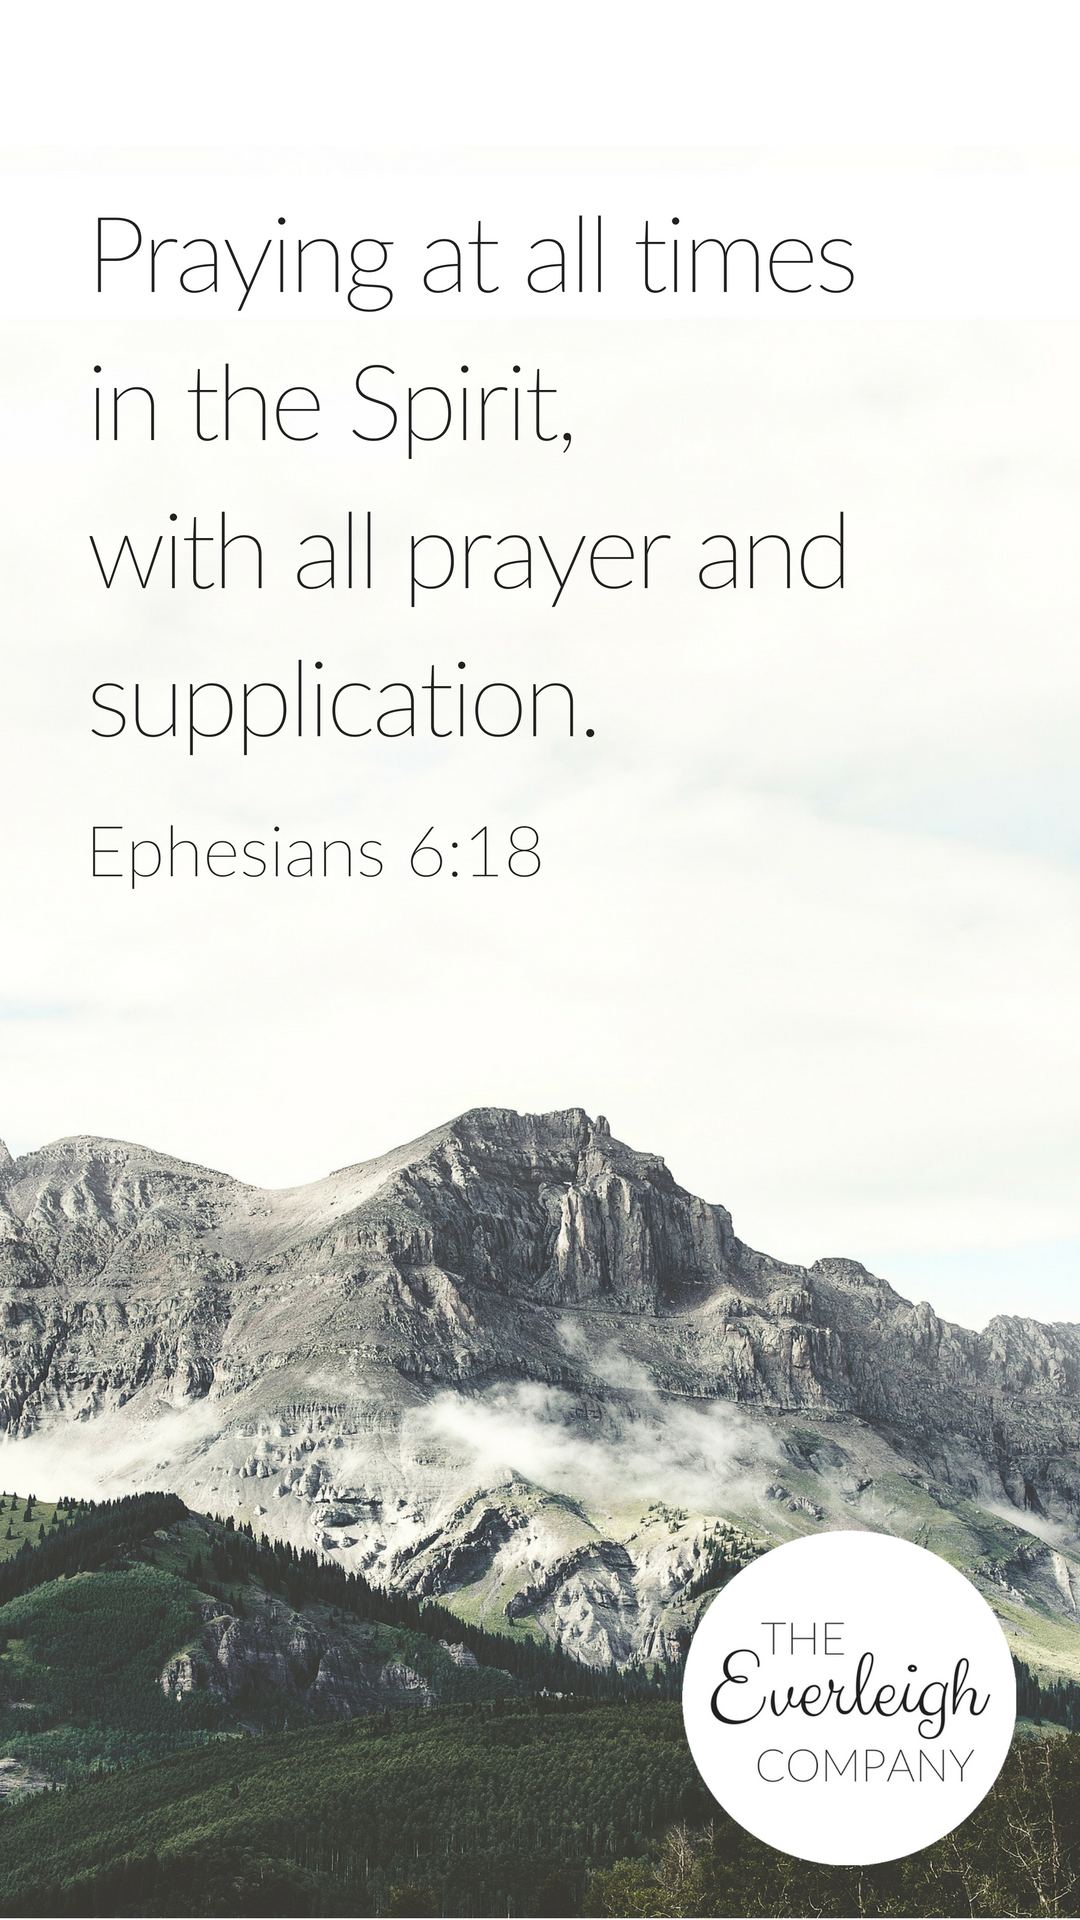 Everleigh Company iPhone Wallpaper Praying At All Times